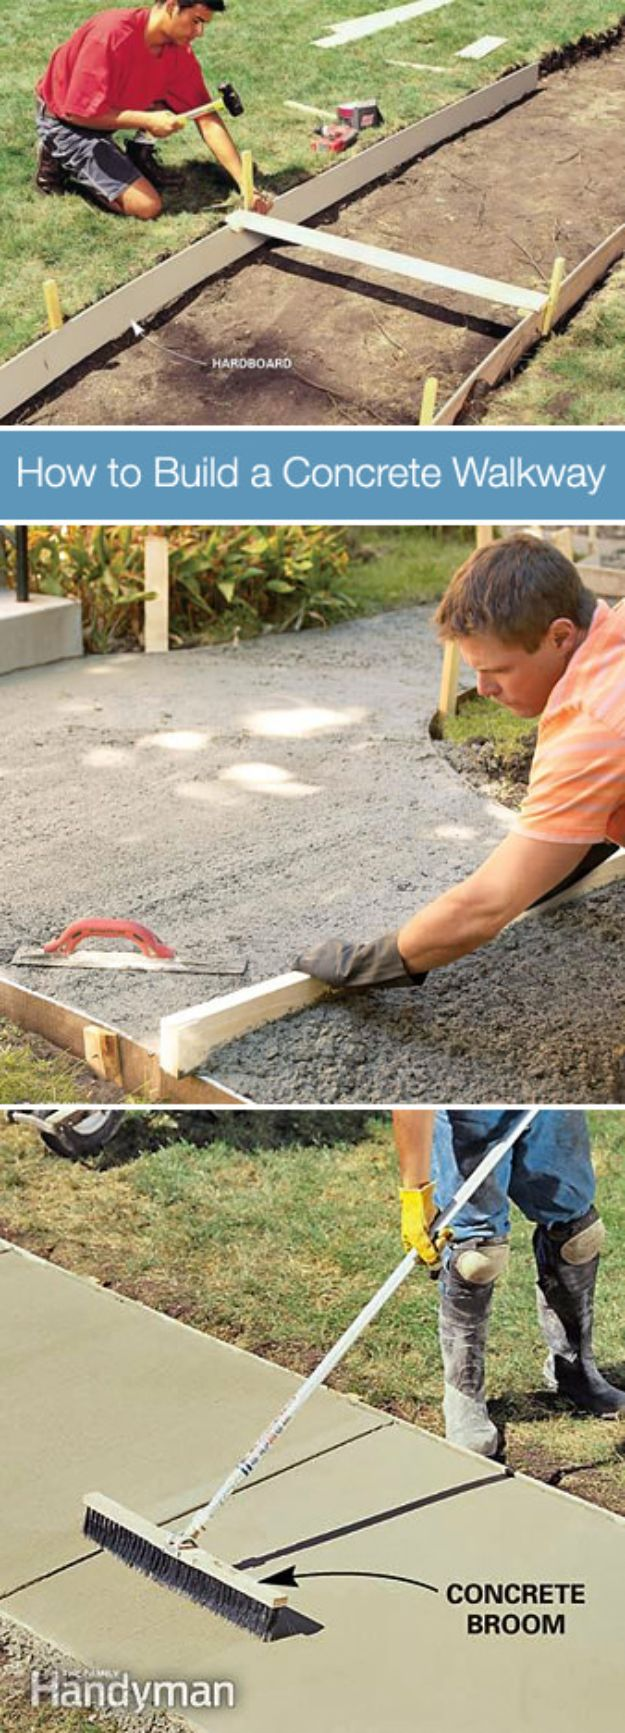 DIY Walkways - Build A Concrete Walkway - Do It Yourself Walkway Ideas for Paths to The Front Door and Backyard - Cheap and Easy Pavers and Concrete Path and Stepping Stones - Wood and Edging, Lights, Backyard and Patio Walks With Gravel, Sand, Dirt and Brick #diyideas